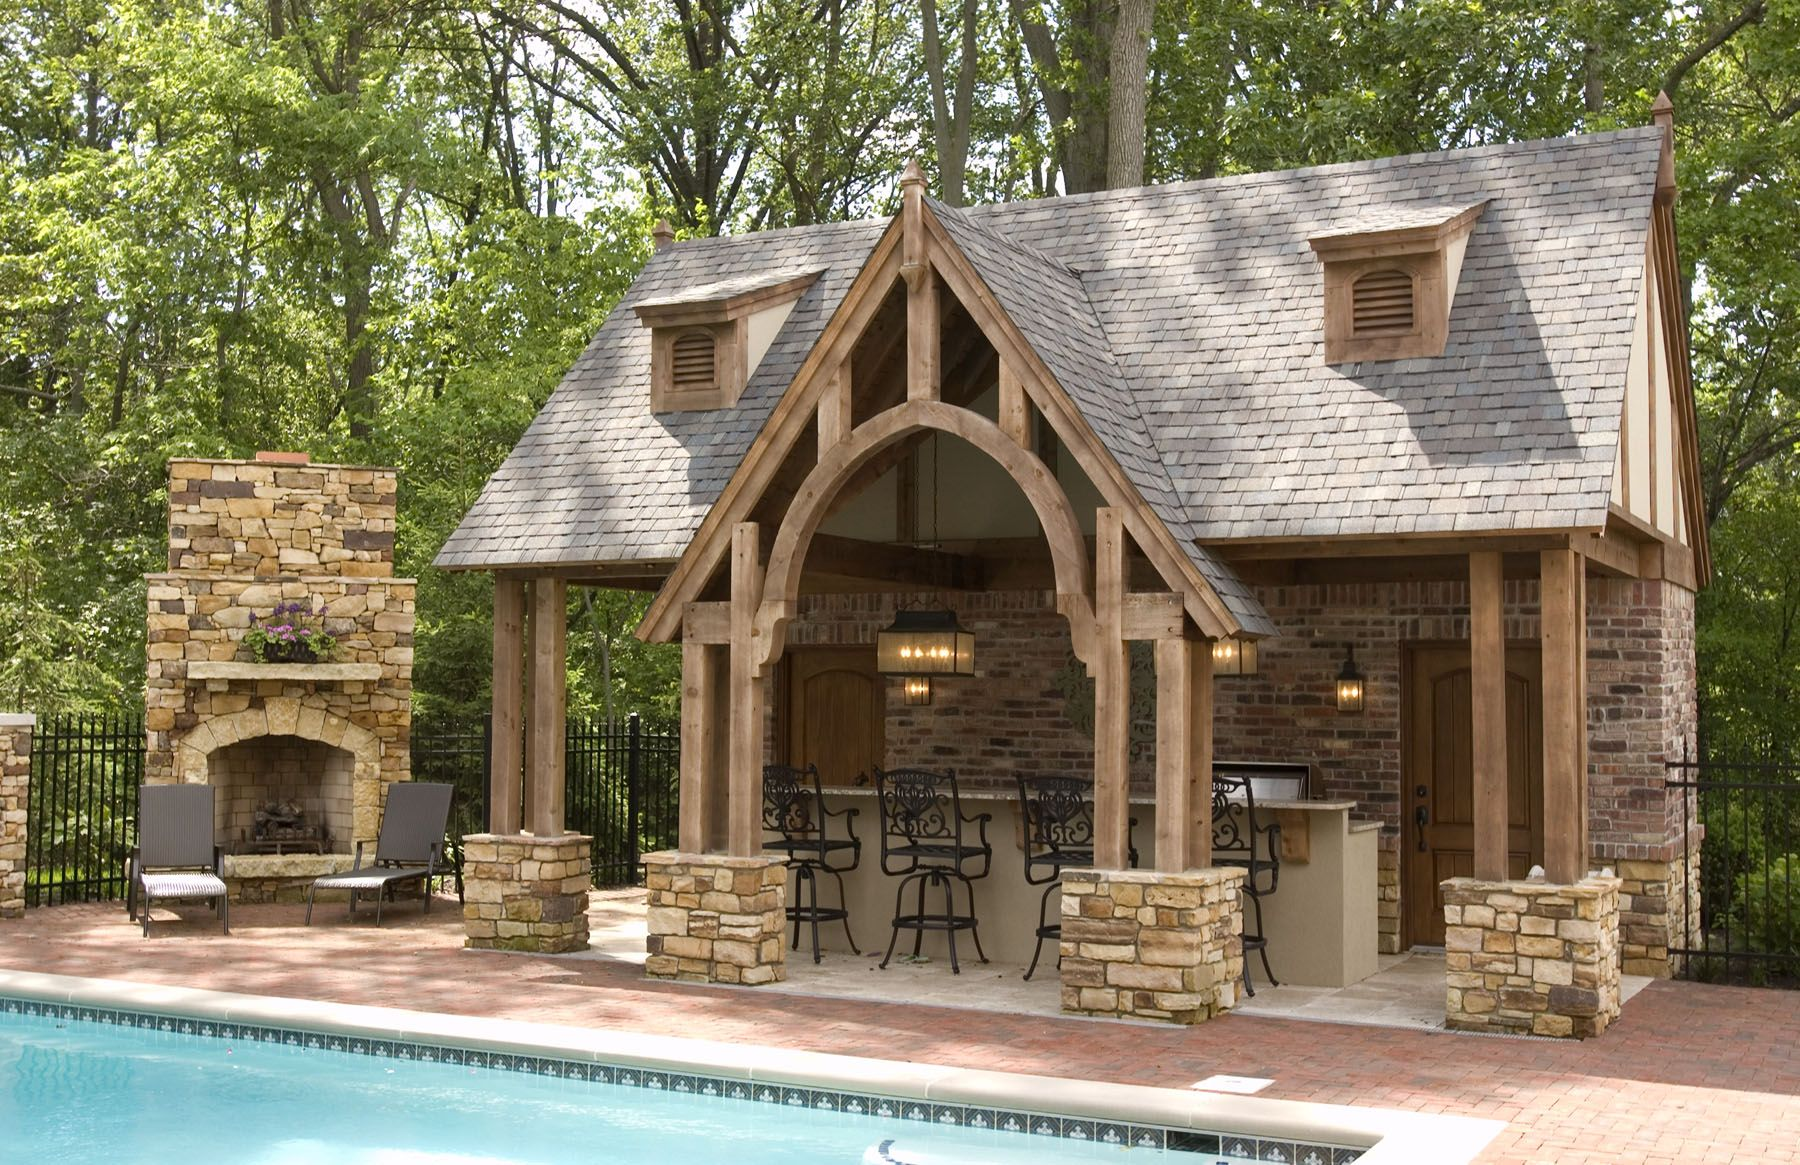 Outdoor pool and Fireplace Designs | Outdoor Kitchen and Pool House ...